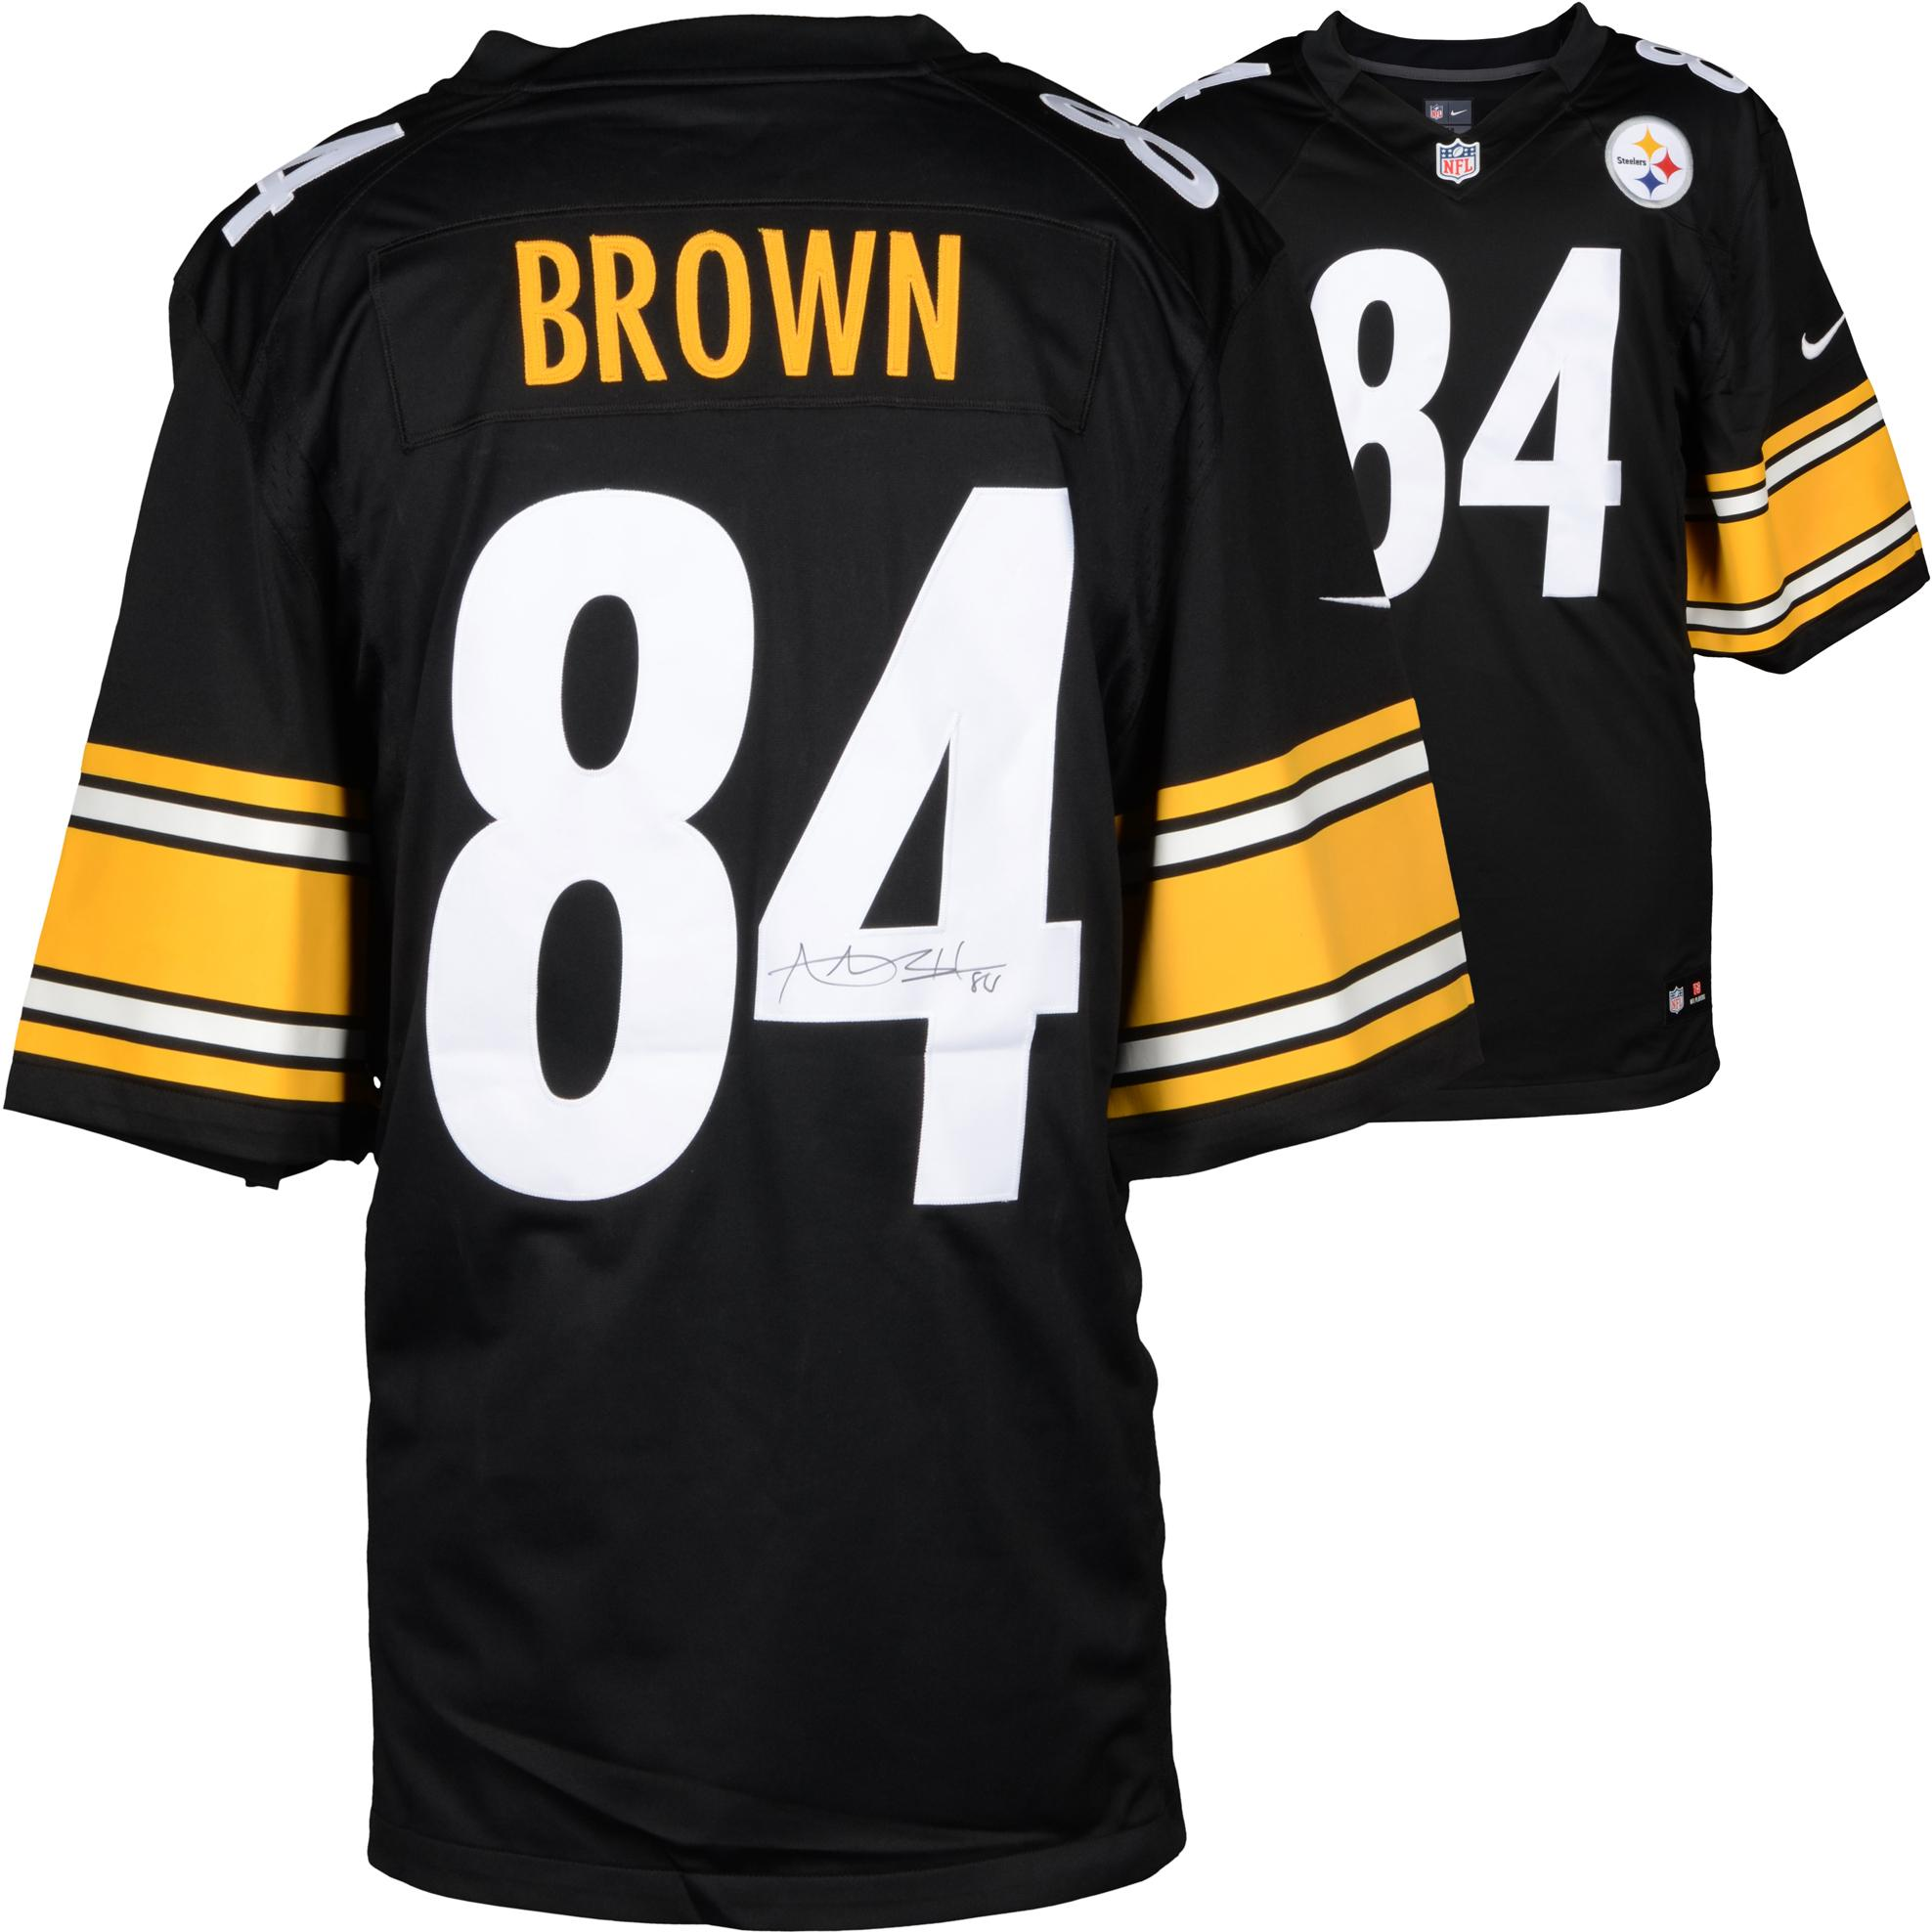 Antonio Brown Pittsburgh Steelers Autographed Limited Black Jersey - Fanatics Authentic Certified